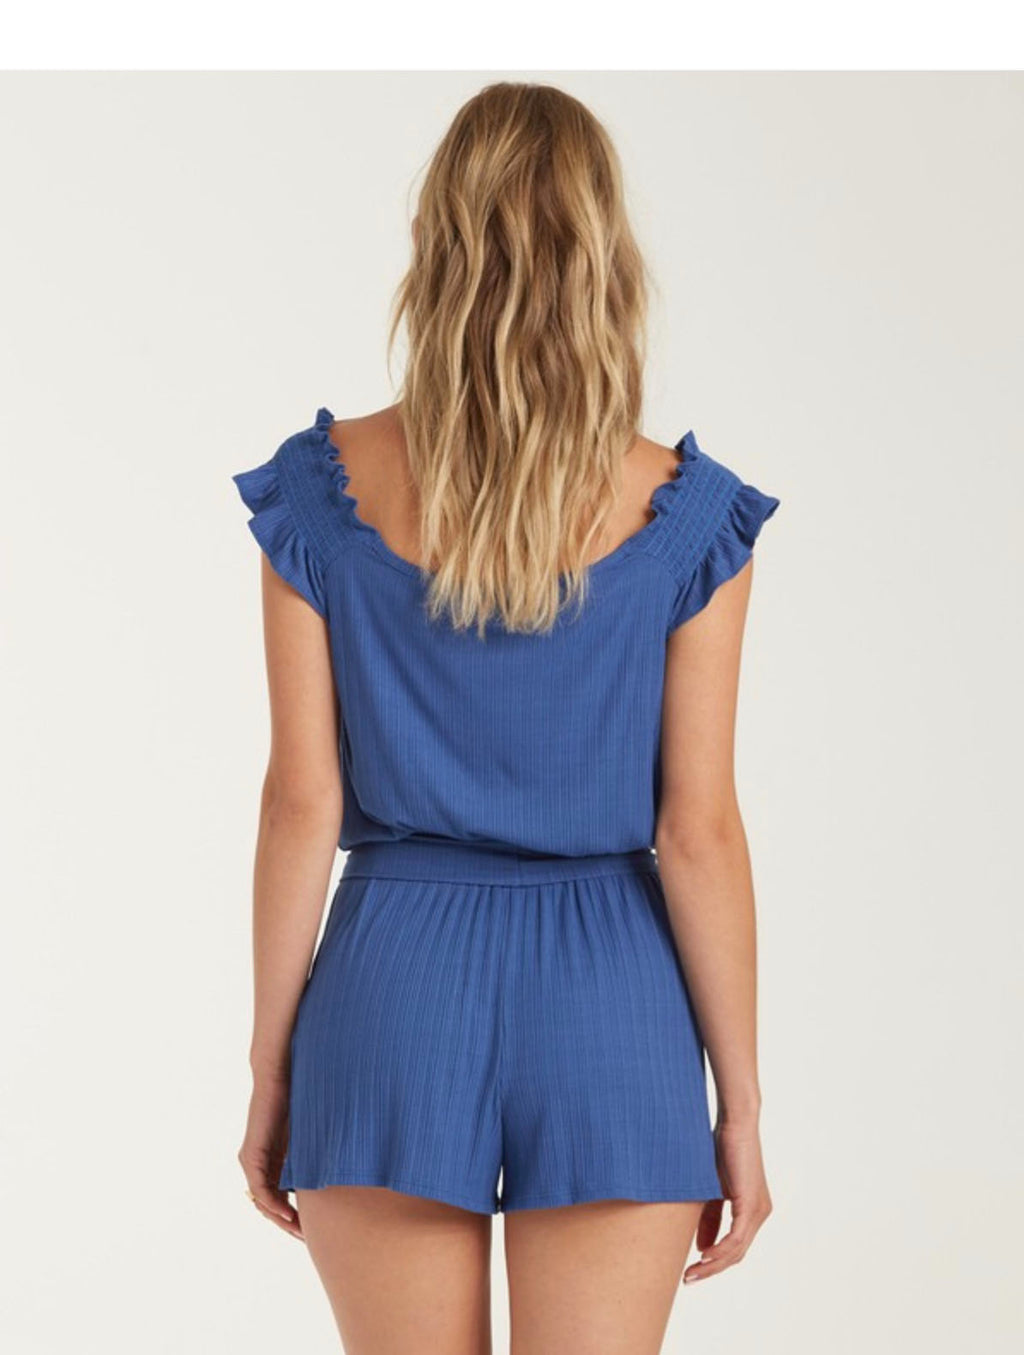 Billabong Day Break Romper in Sail Away